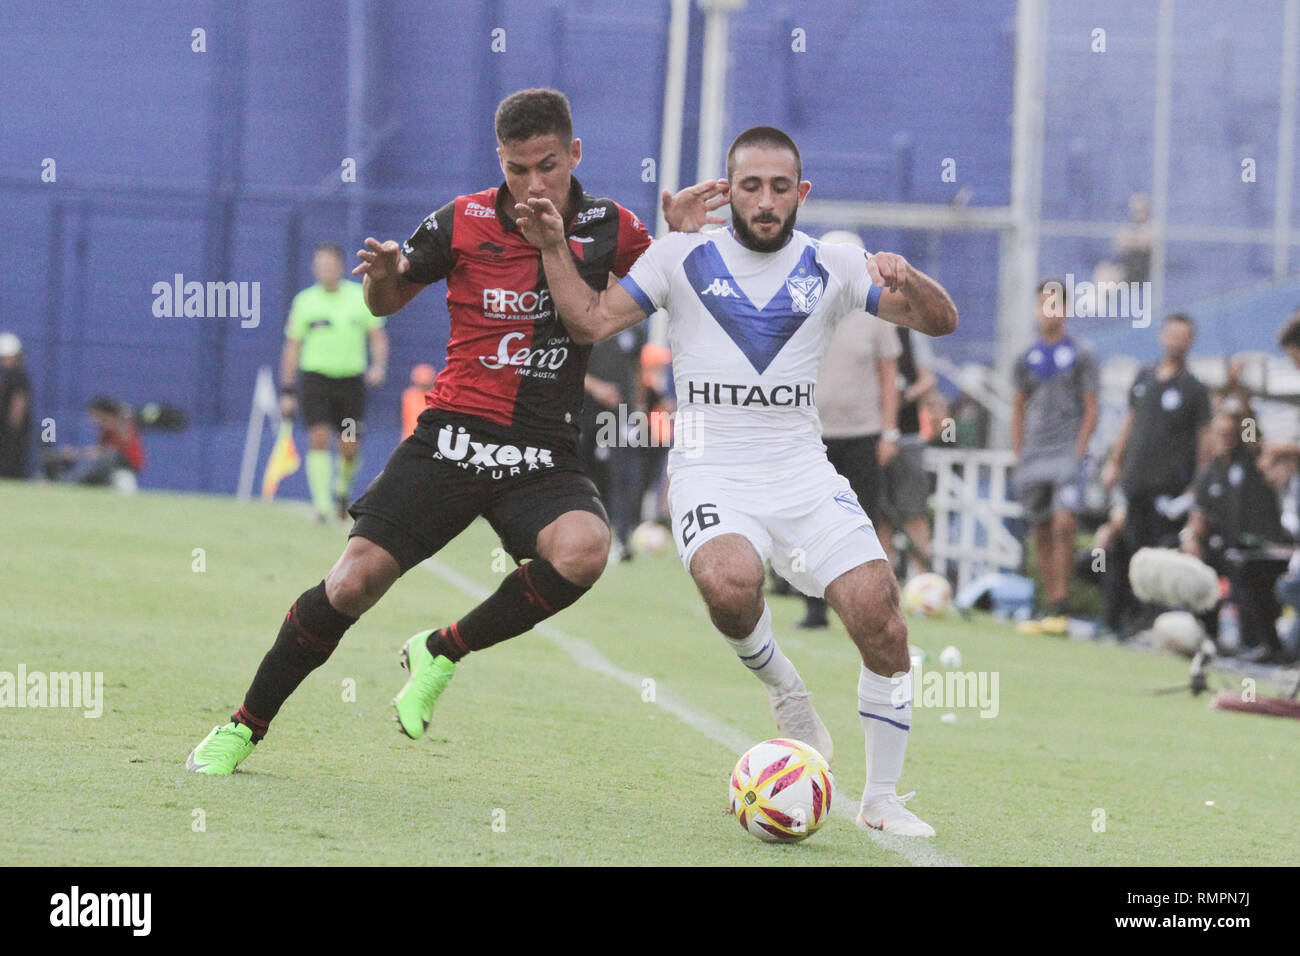 Buenos Aires, Argentina. 15th Feb, 2019. Matias Vargas during the match between Vélez Sarsfield e Colon for Superliga Argentina, this friday on José Amalfitani Stadium on Buenos Aires, Argentina. ( Credit: Néstor J. Beremblum/Alamy Live News - Stock Image